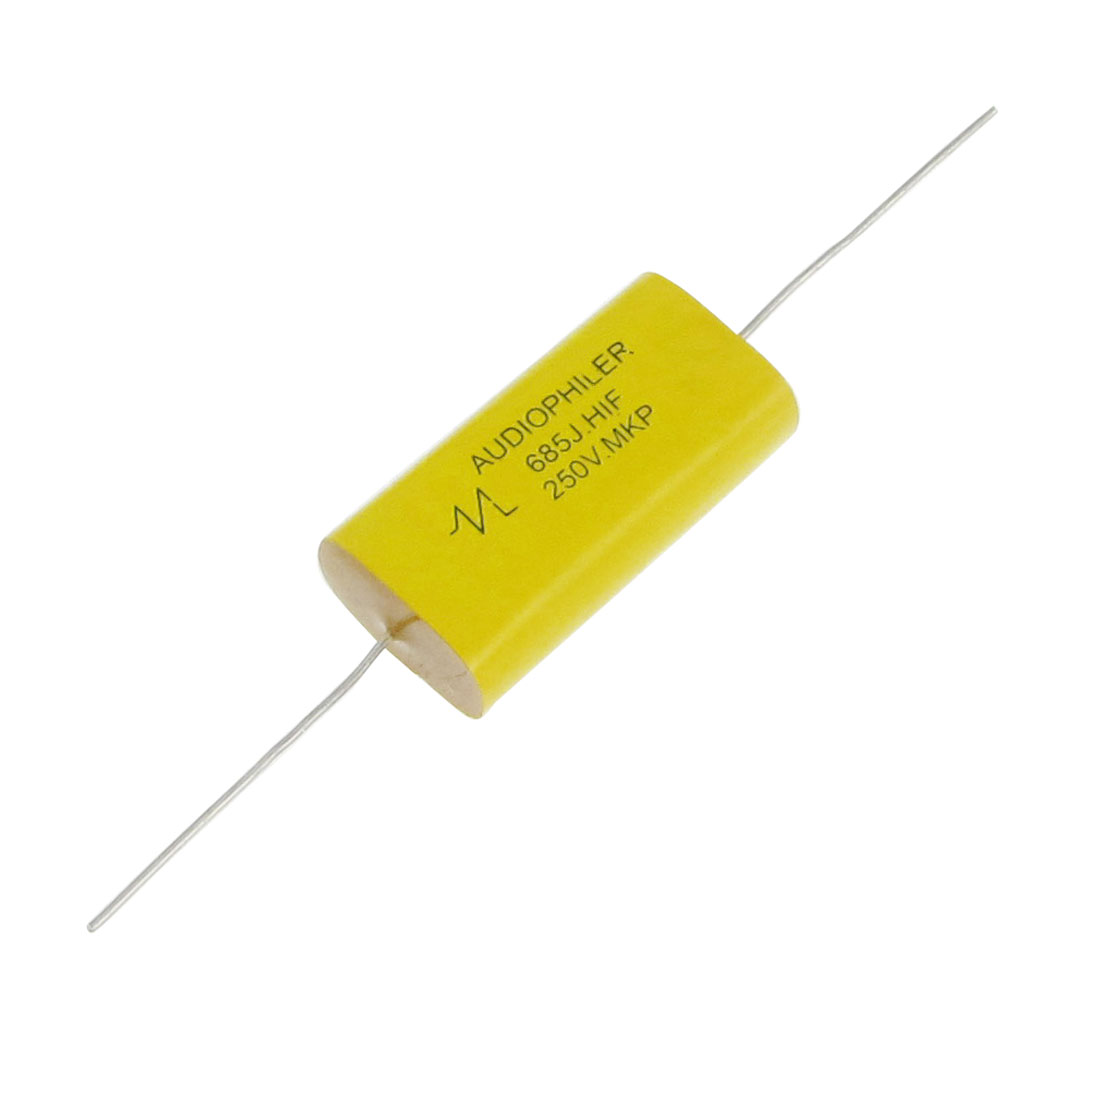 6.8uF 250V Axial Leads Metallized Polypropylene Film MKP Audio Capacitor